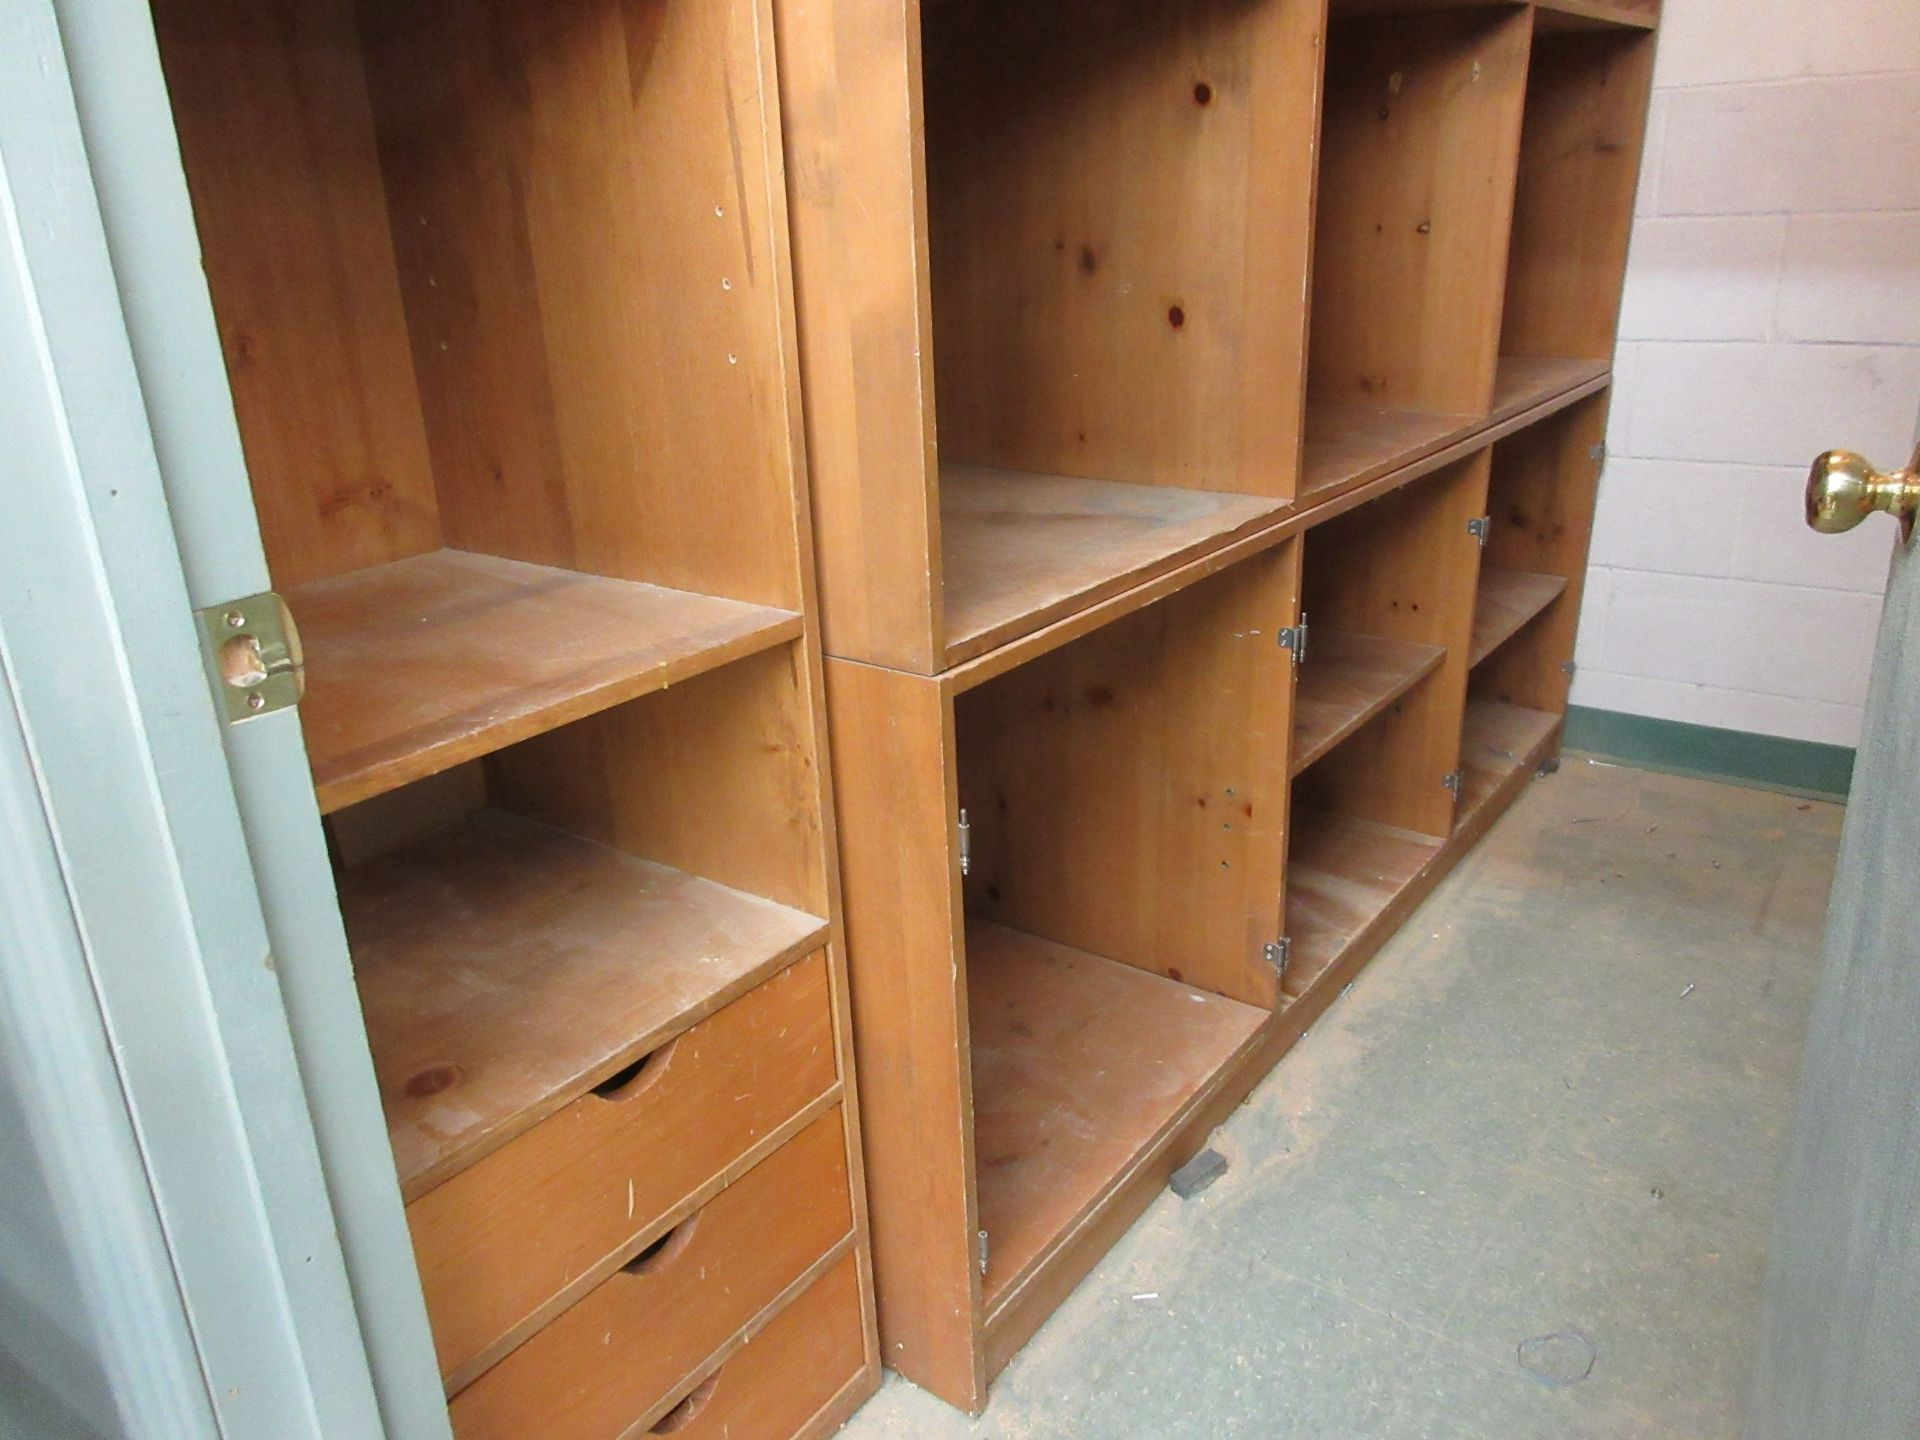 LOT including assorted shelving, etc. - Image 3 of 3